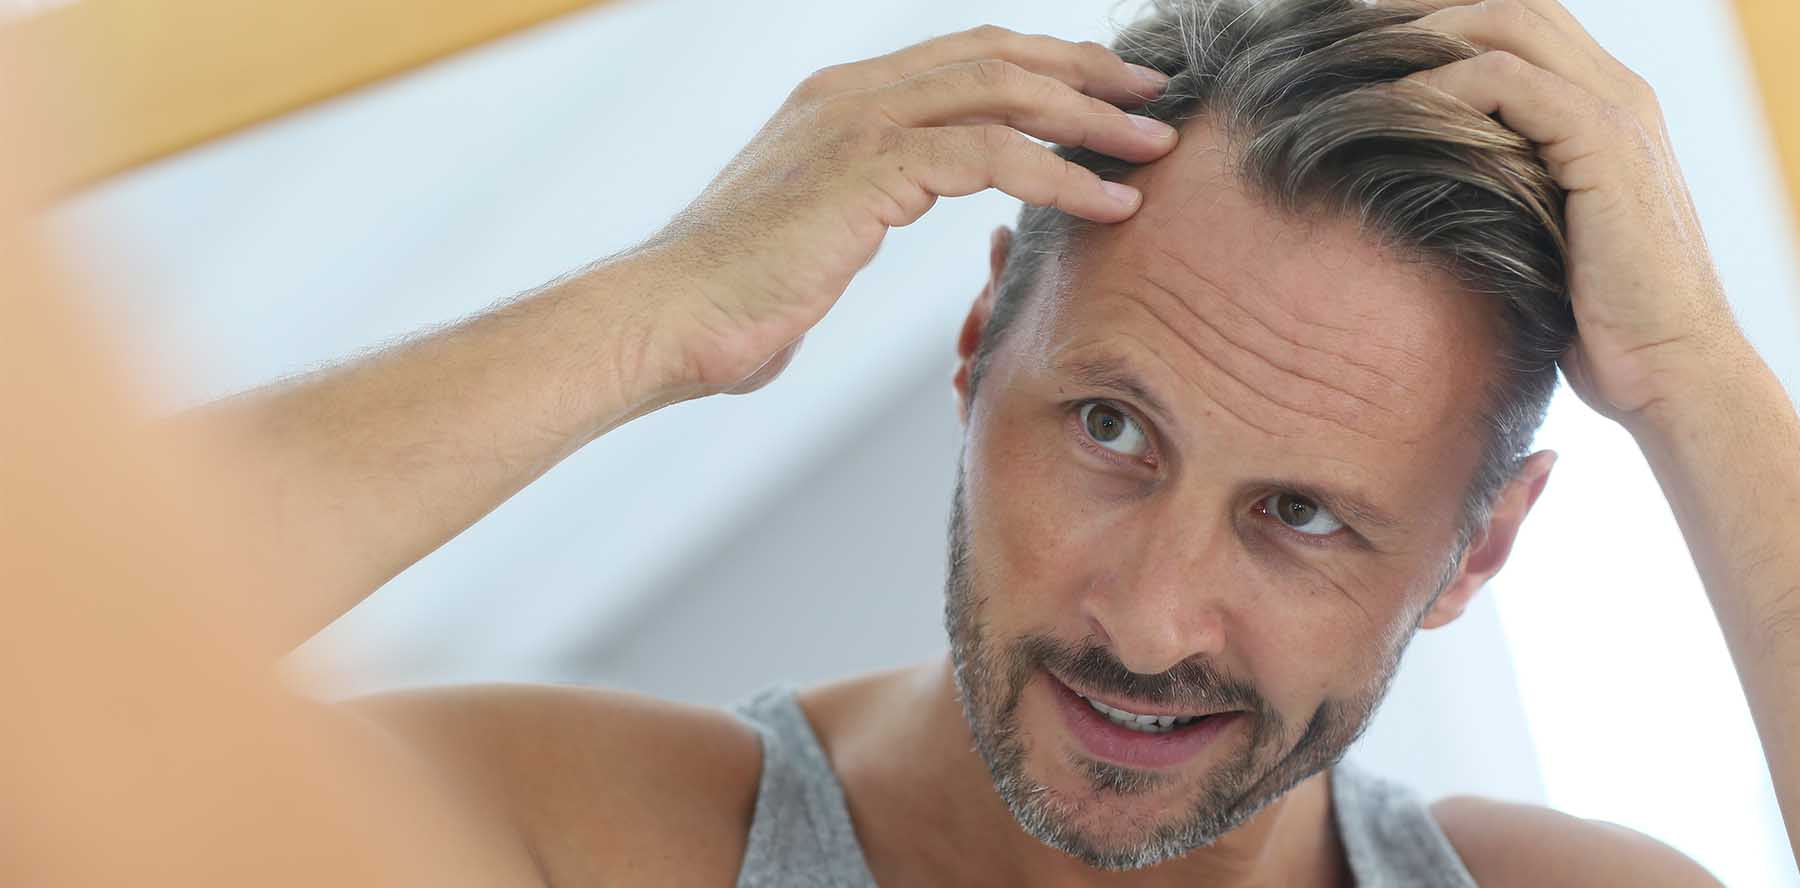 Receding Hairline: How To Reclaim Your Hair